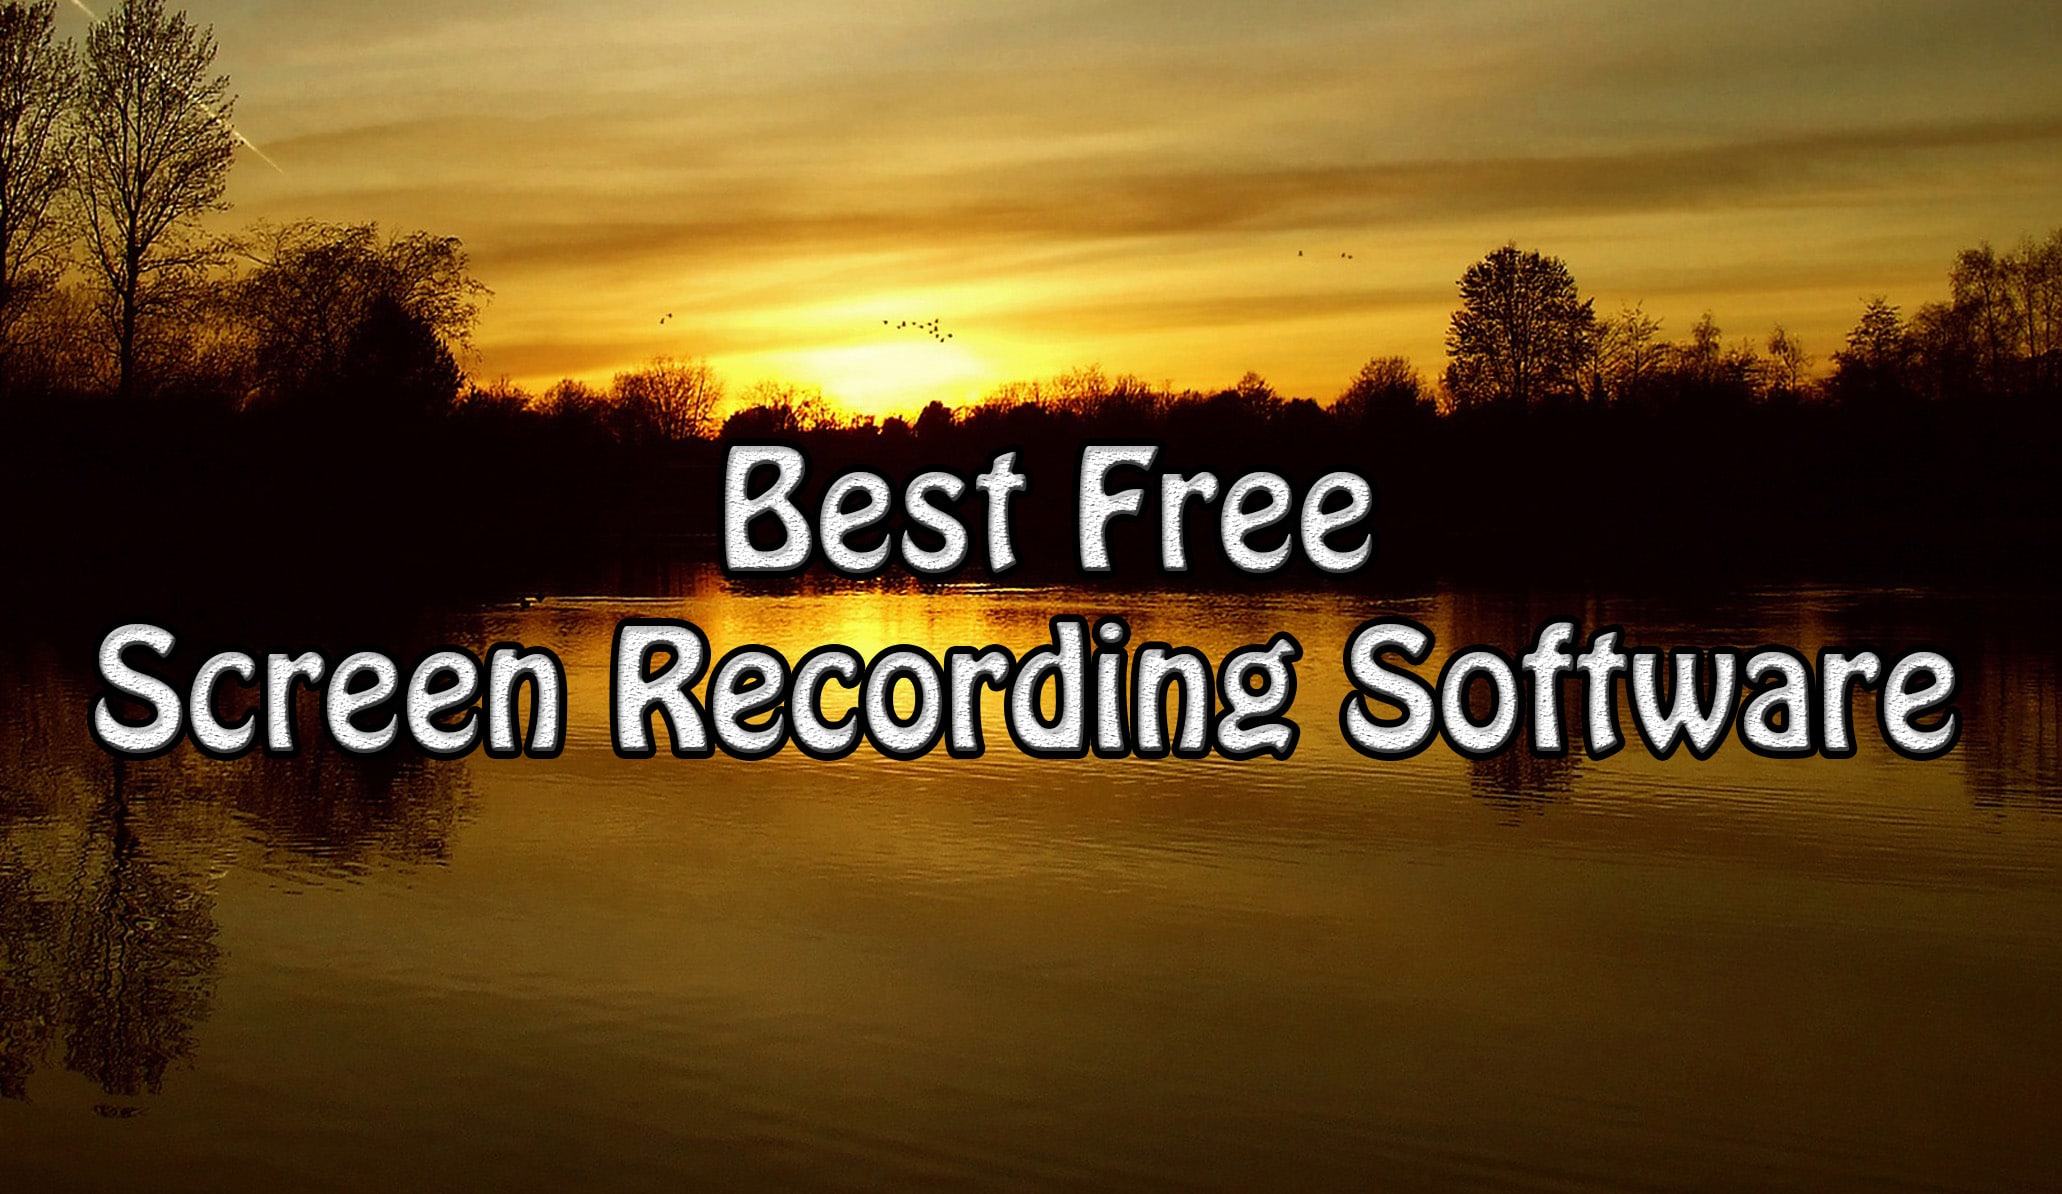 Best Free Screen Recording Software